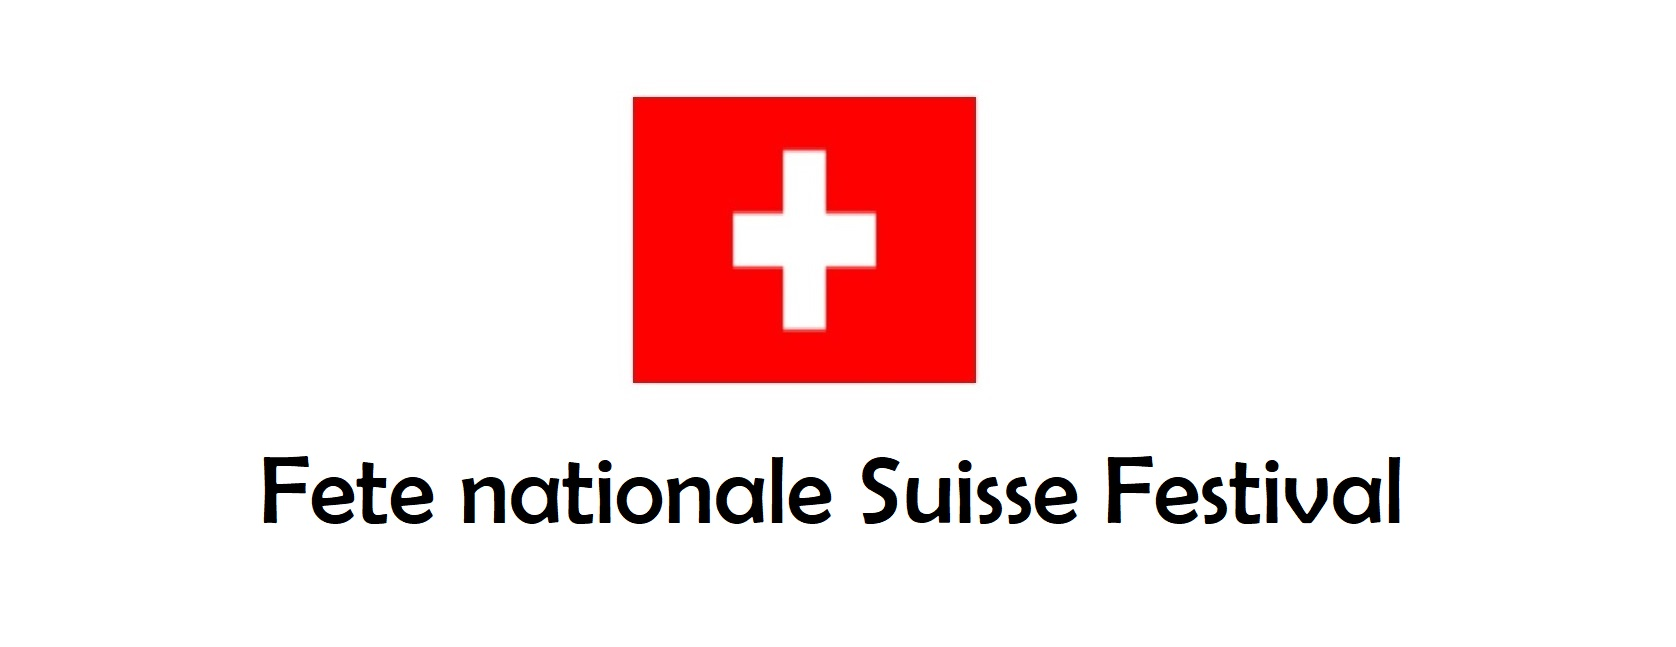 Fete nationale Suisse (Swiss National Day) Festival, Switzerland